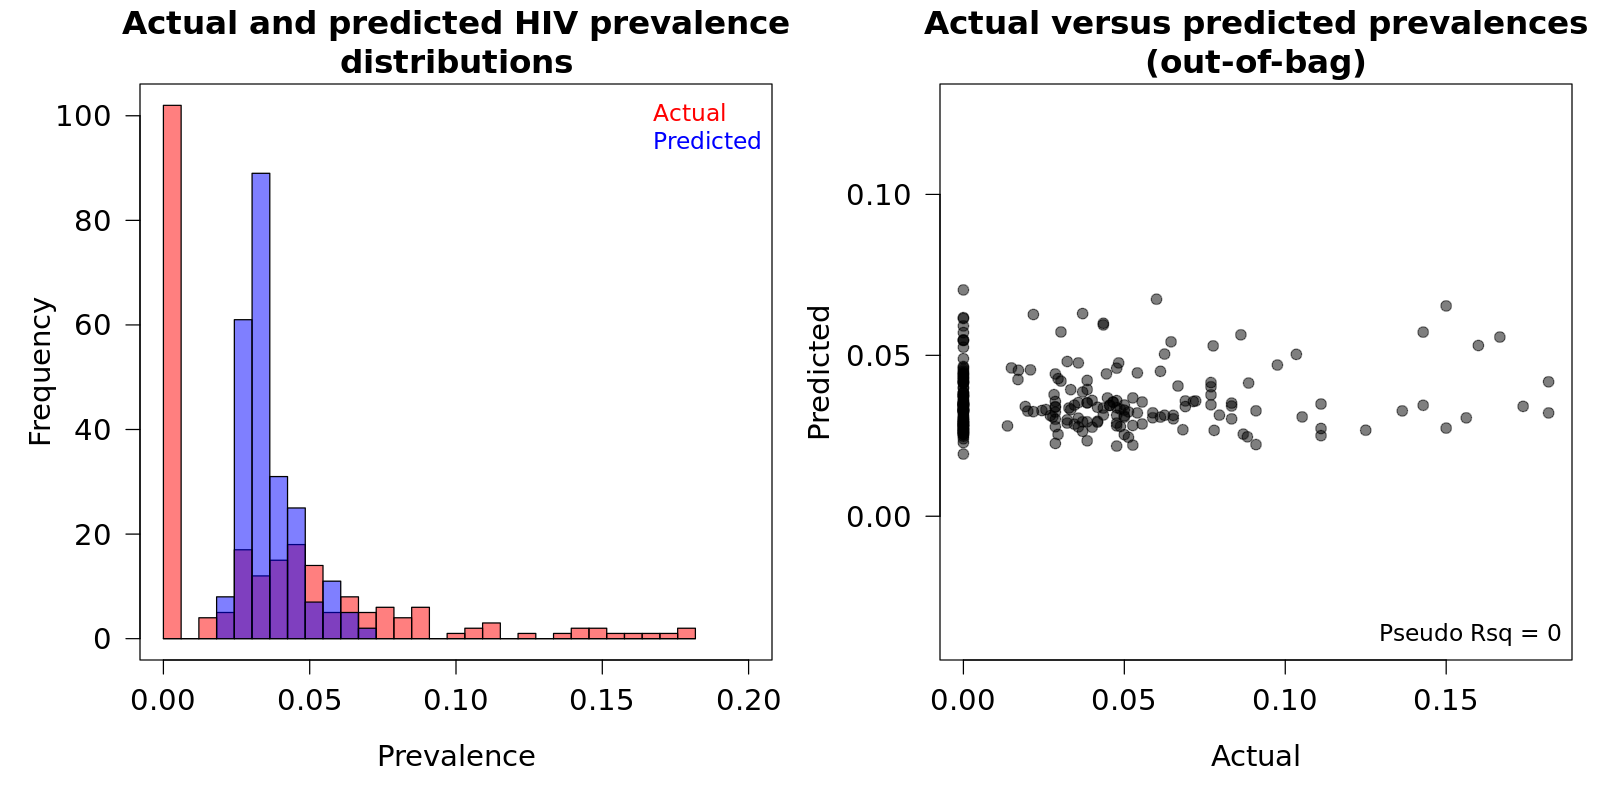 A histogram illustrating the zero inflated and skewed distribution for the HIV prevalence estimates across Côte d'Ivoire.